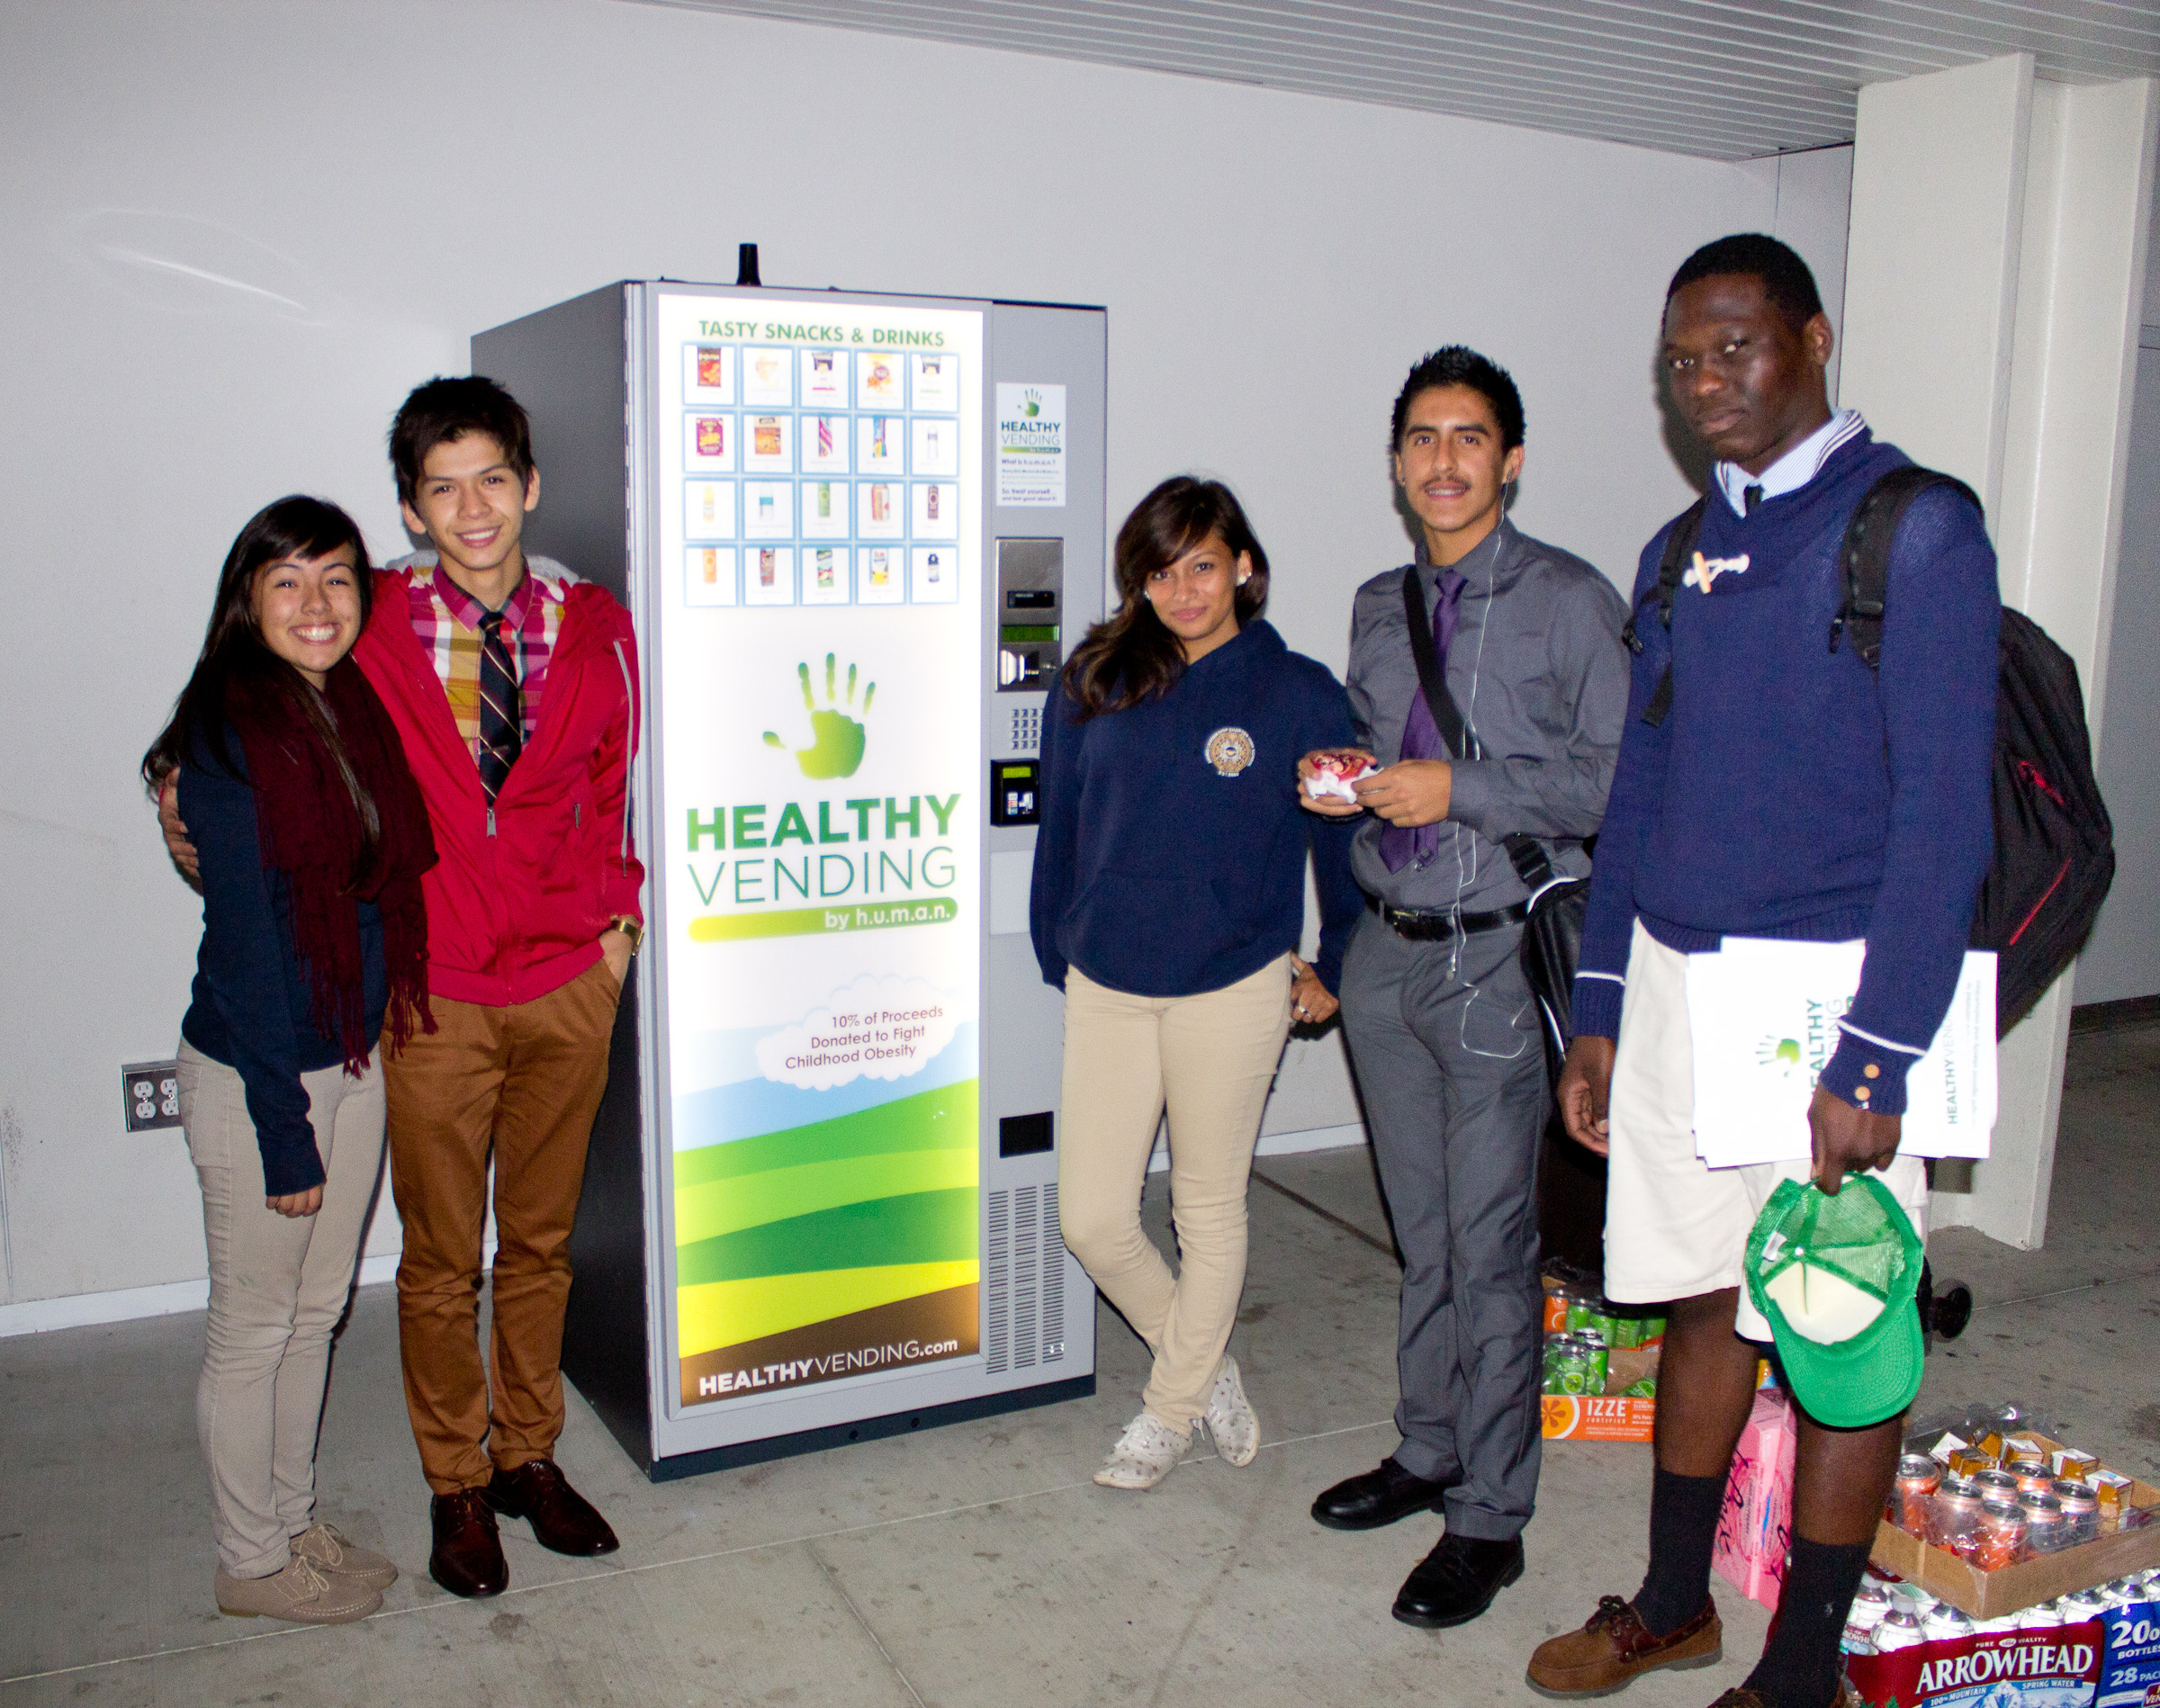 Animo Leadership Academy Students Stand Next to a HUMAN Healthy Vending Machine